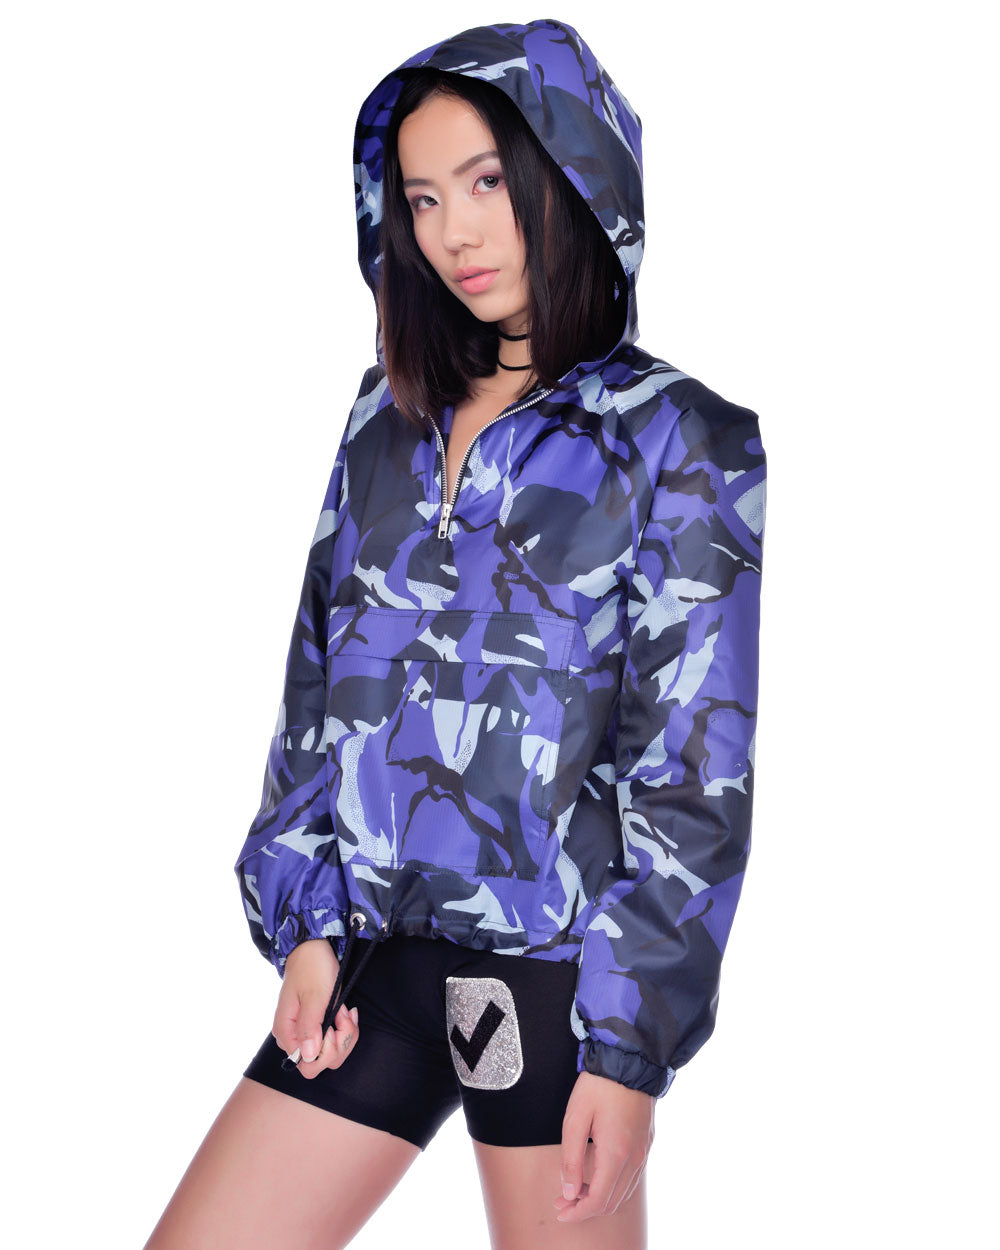 SURVIVOR WINDBREAKER PULLOVER JACKET - Eros Mortis